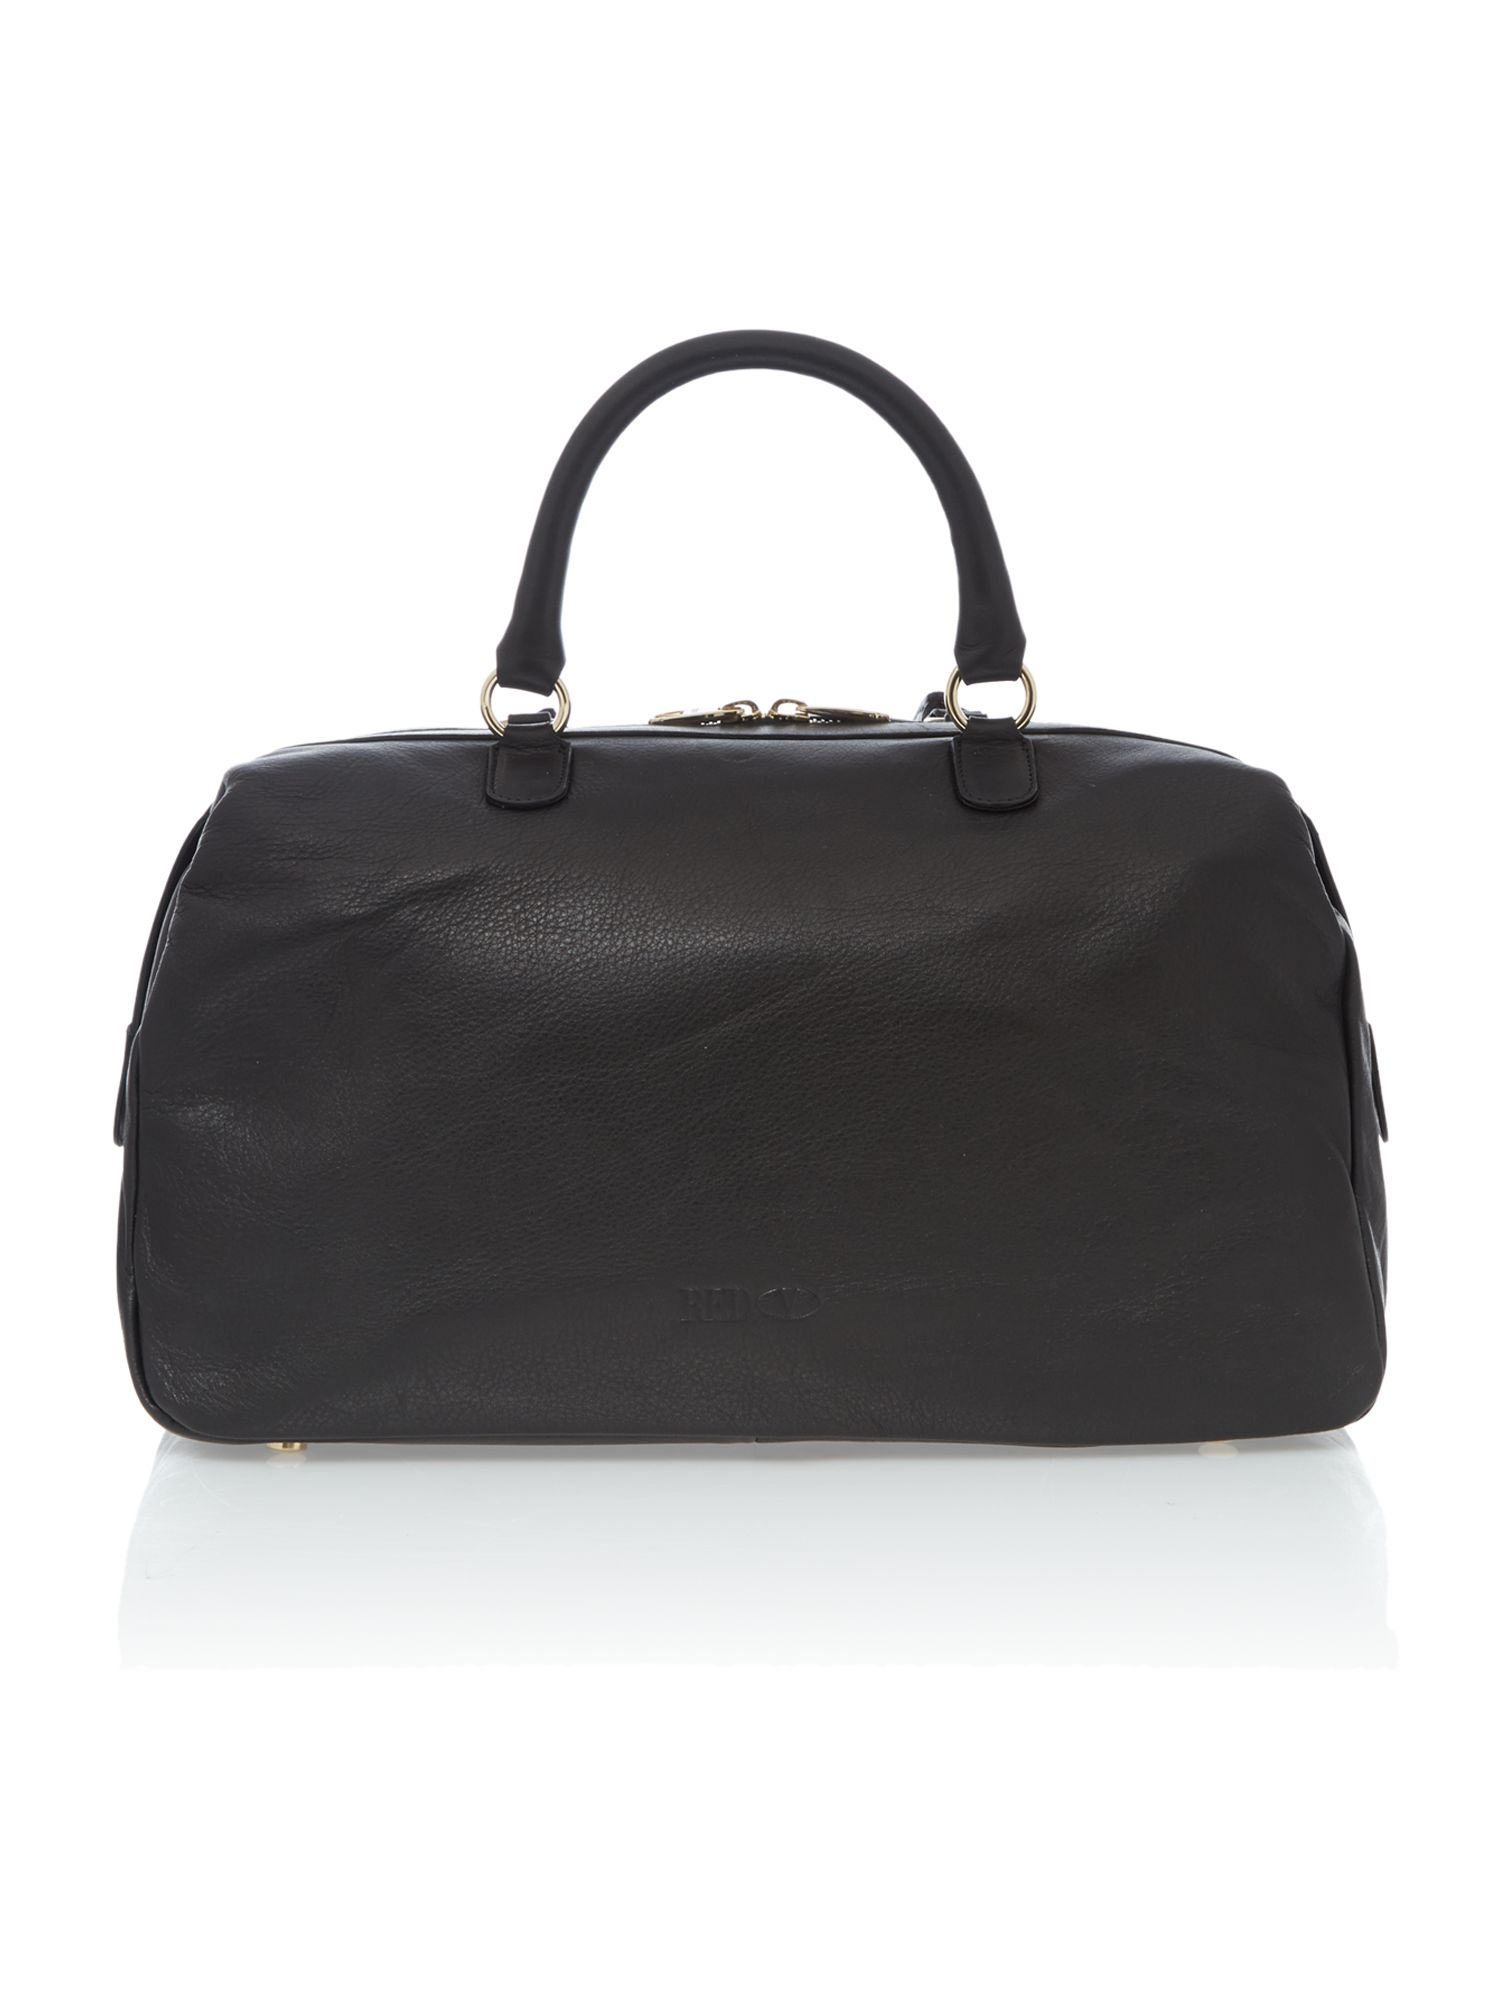 Duffel black bowling bag